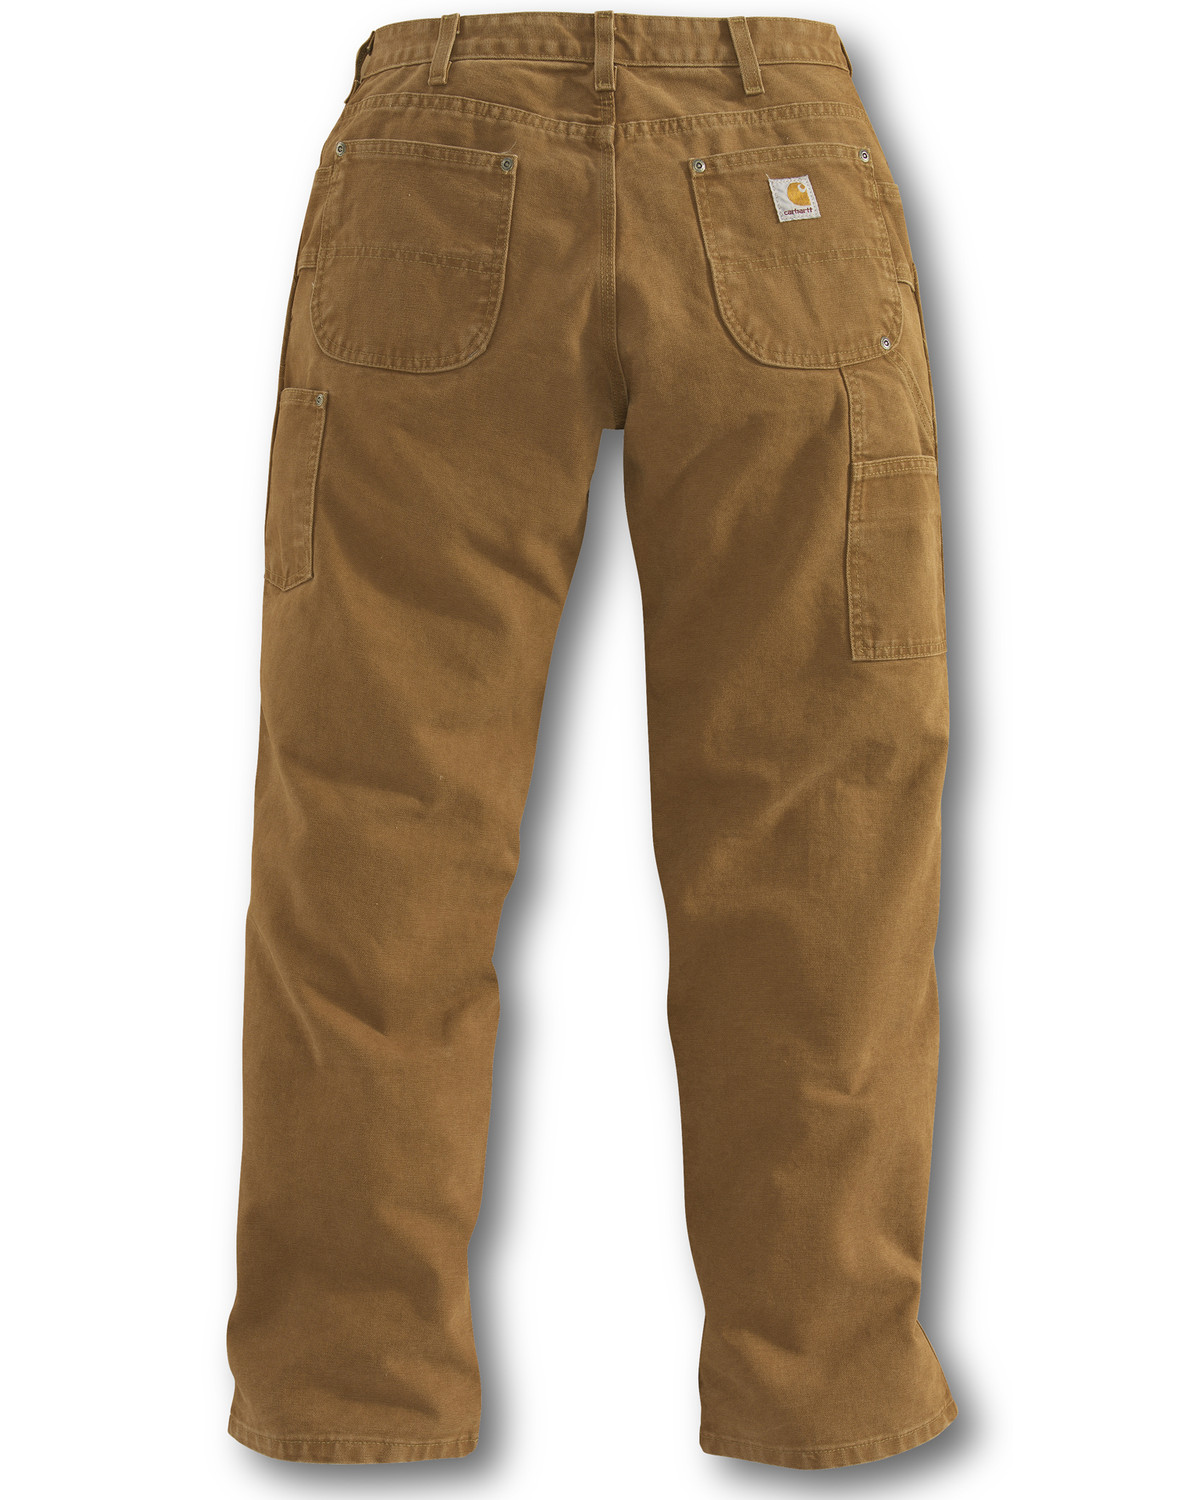 carhartt double front work dungaree pants country outfitter. Black Bedroom Furniture Sets. Home Design Ideas